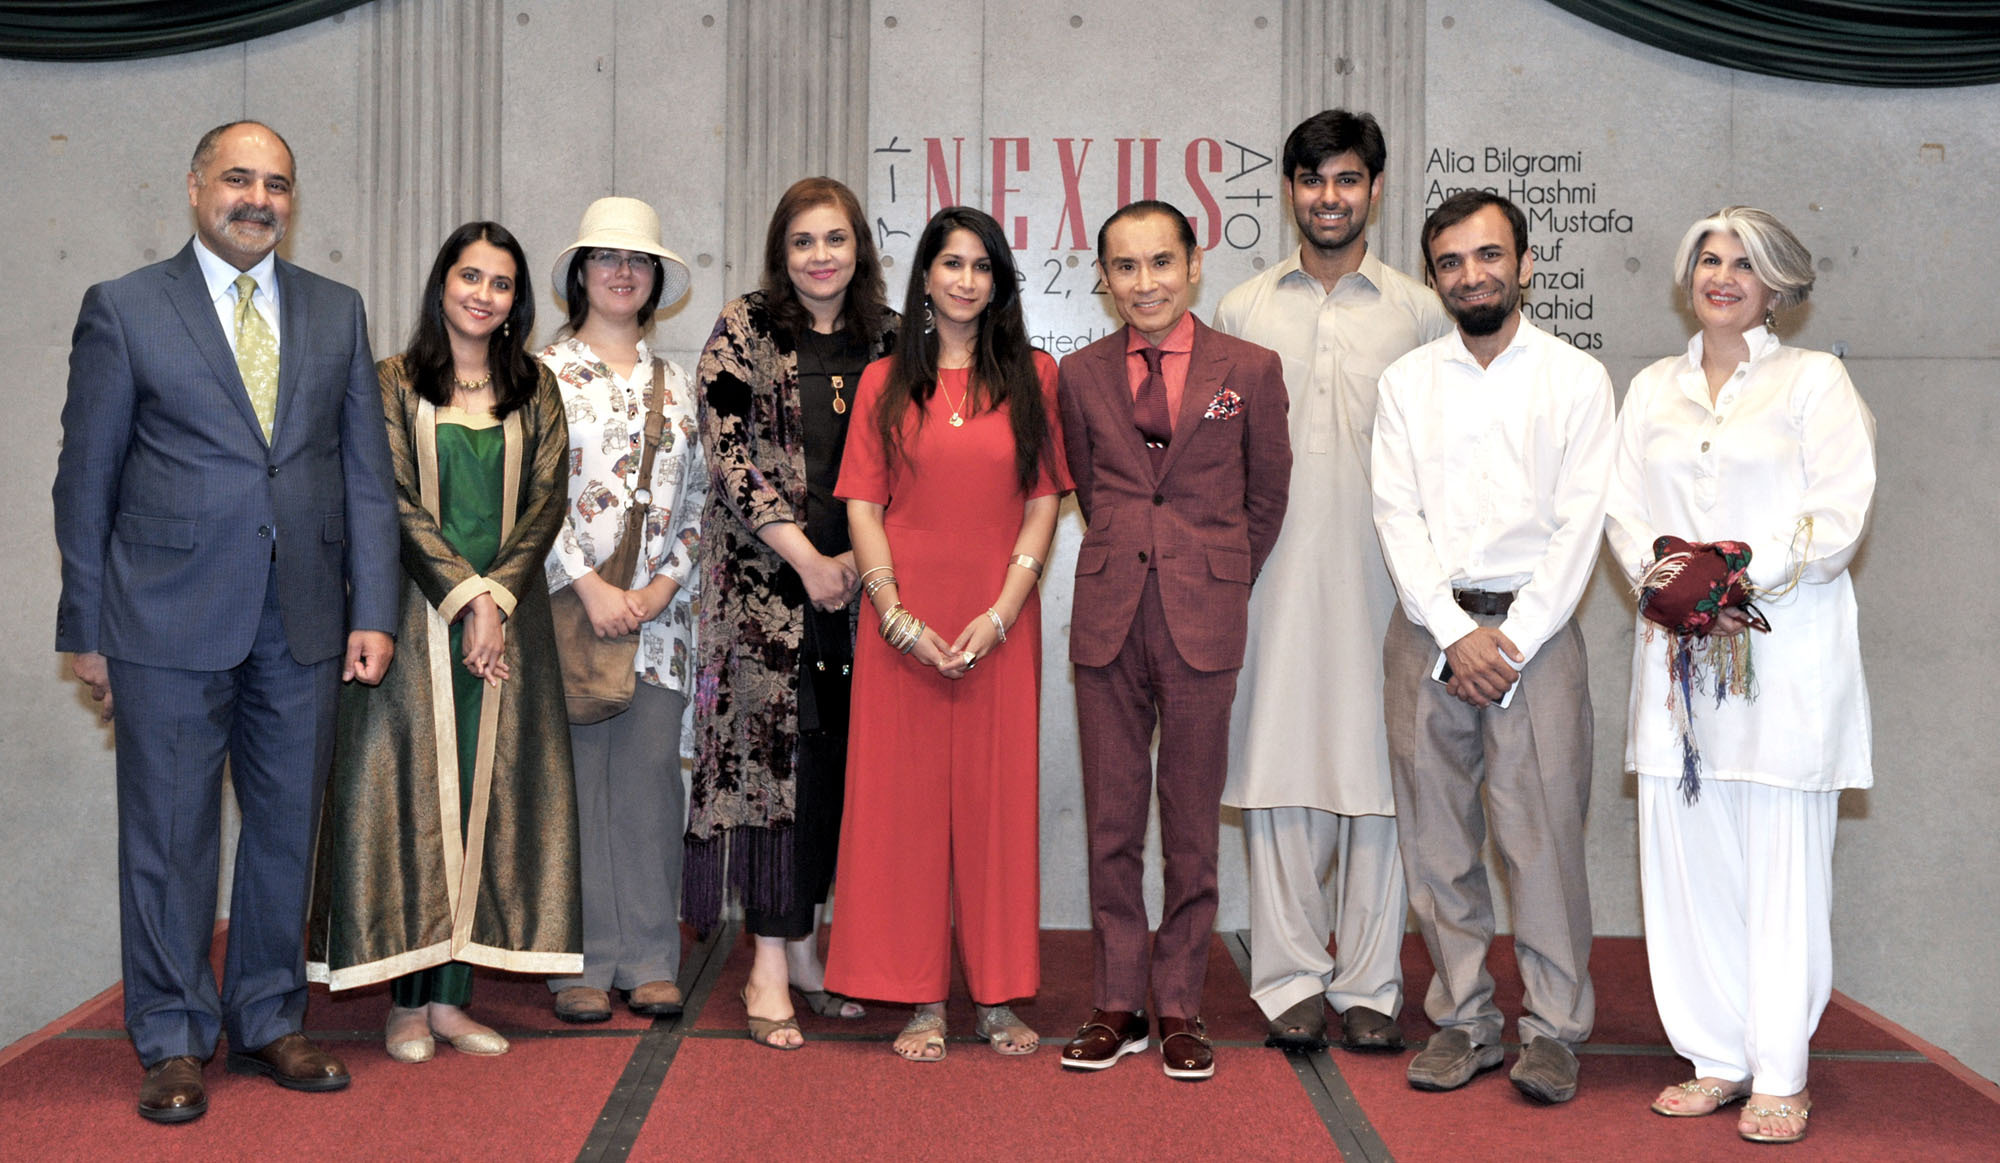 Prominent Pakistani artists (second from left) Alia Bilgrami, Amna Hashmi, Sheherbano Husain, Seyhr Qayum, Jibran Shahid, Imran Hunzai and Ilona Yusuf are joined by Pakistan Ambassador Farukh Amil (left) and actor and special guest Tsurutaro Kataoka (fourth from right) at the Artists-in-Residence art exhibition, which looks to create a fusion between Pakistani and Japanese societies, at the Embassy of Pakistan on June 2. | YOSHIAKI MIURA